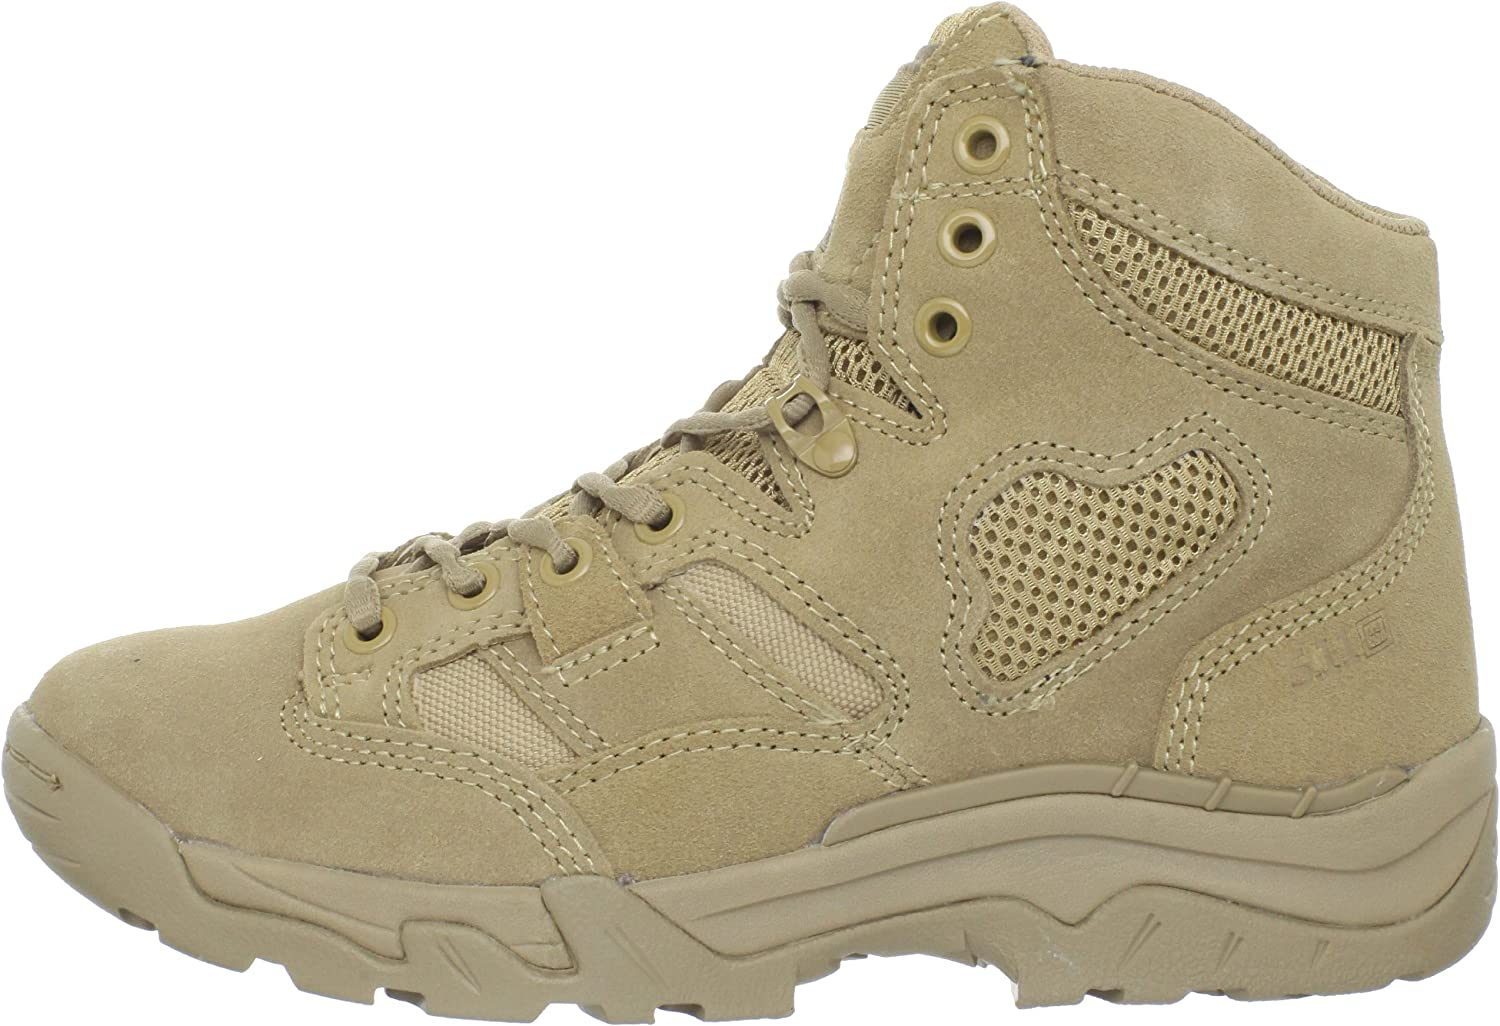 5.11 Tactical Taclite 6 Inch Military Boots EUR 44.5 Coyote